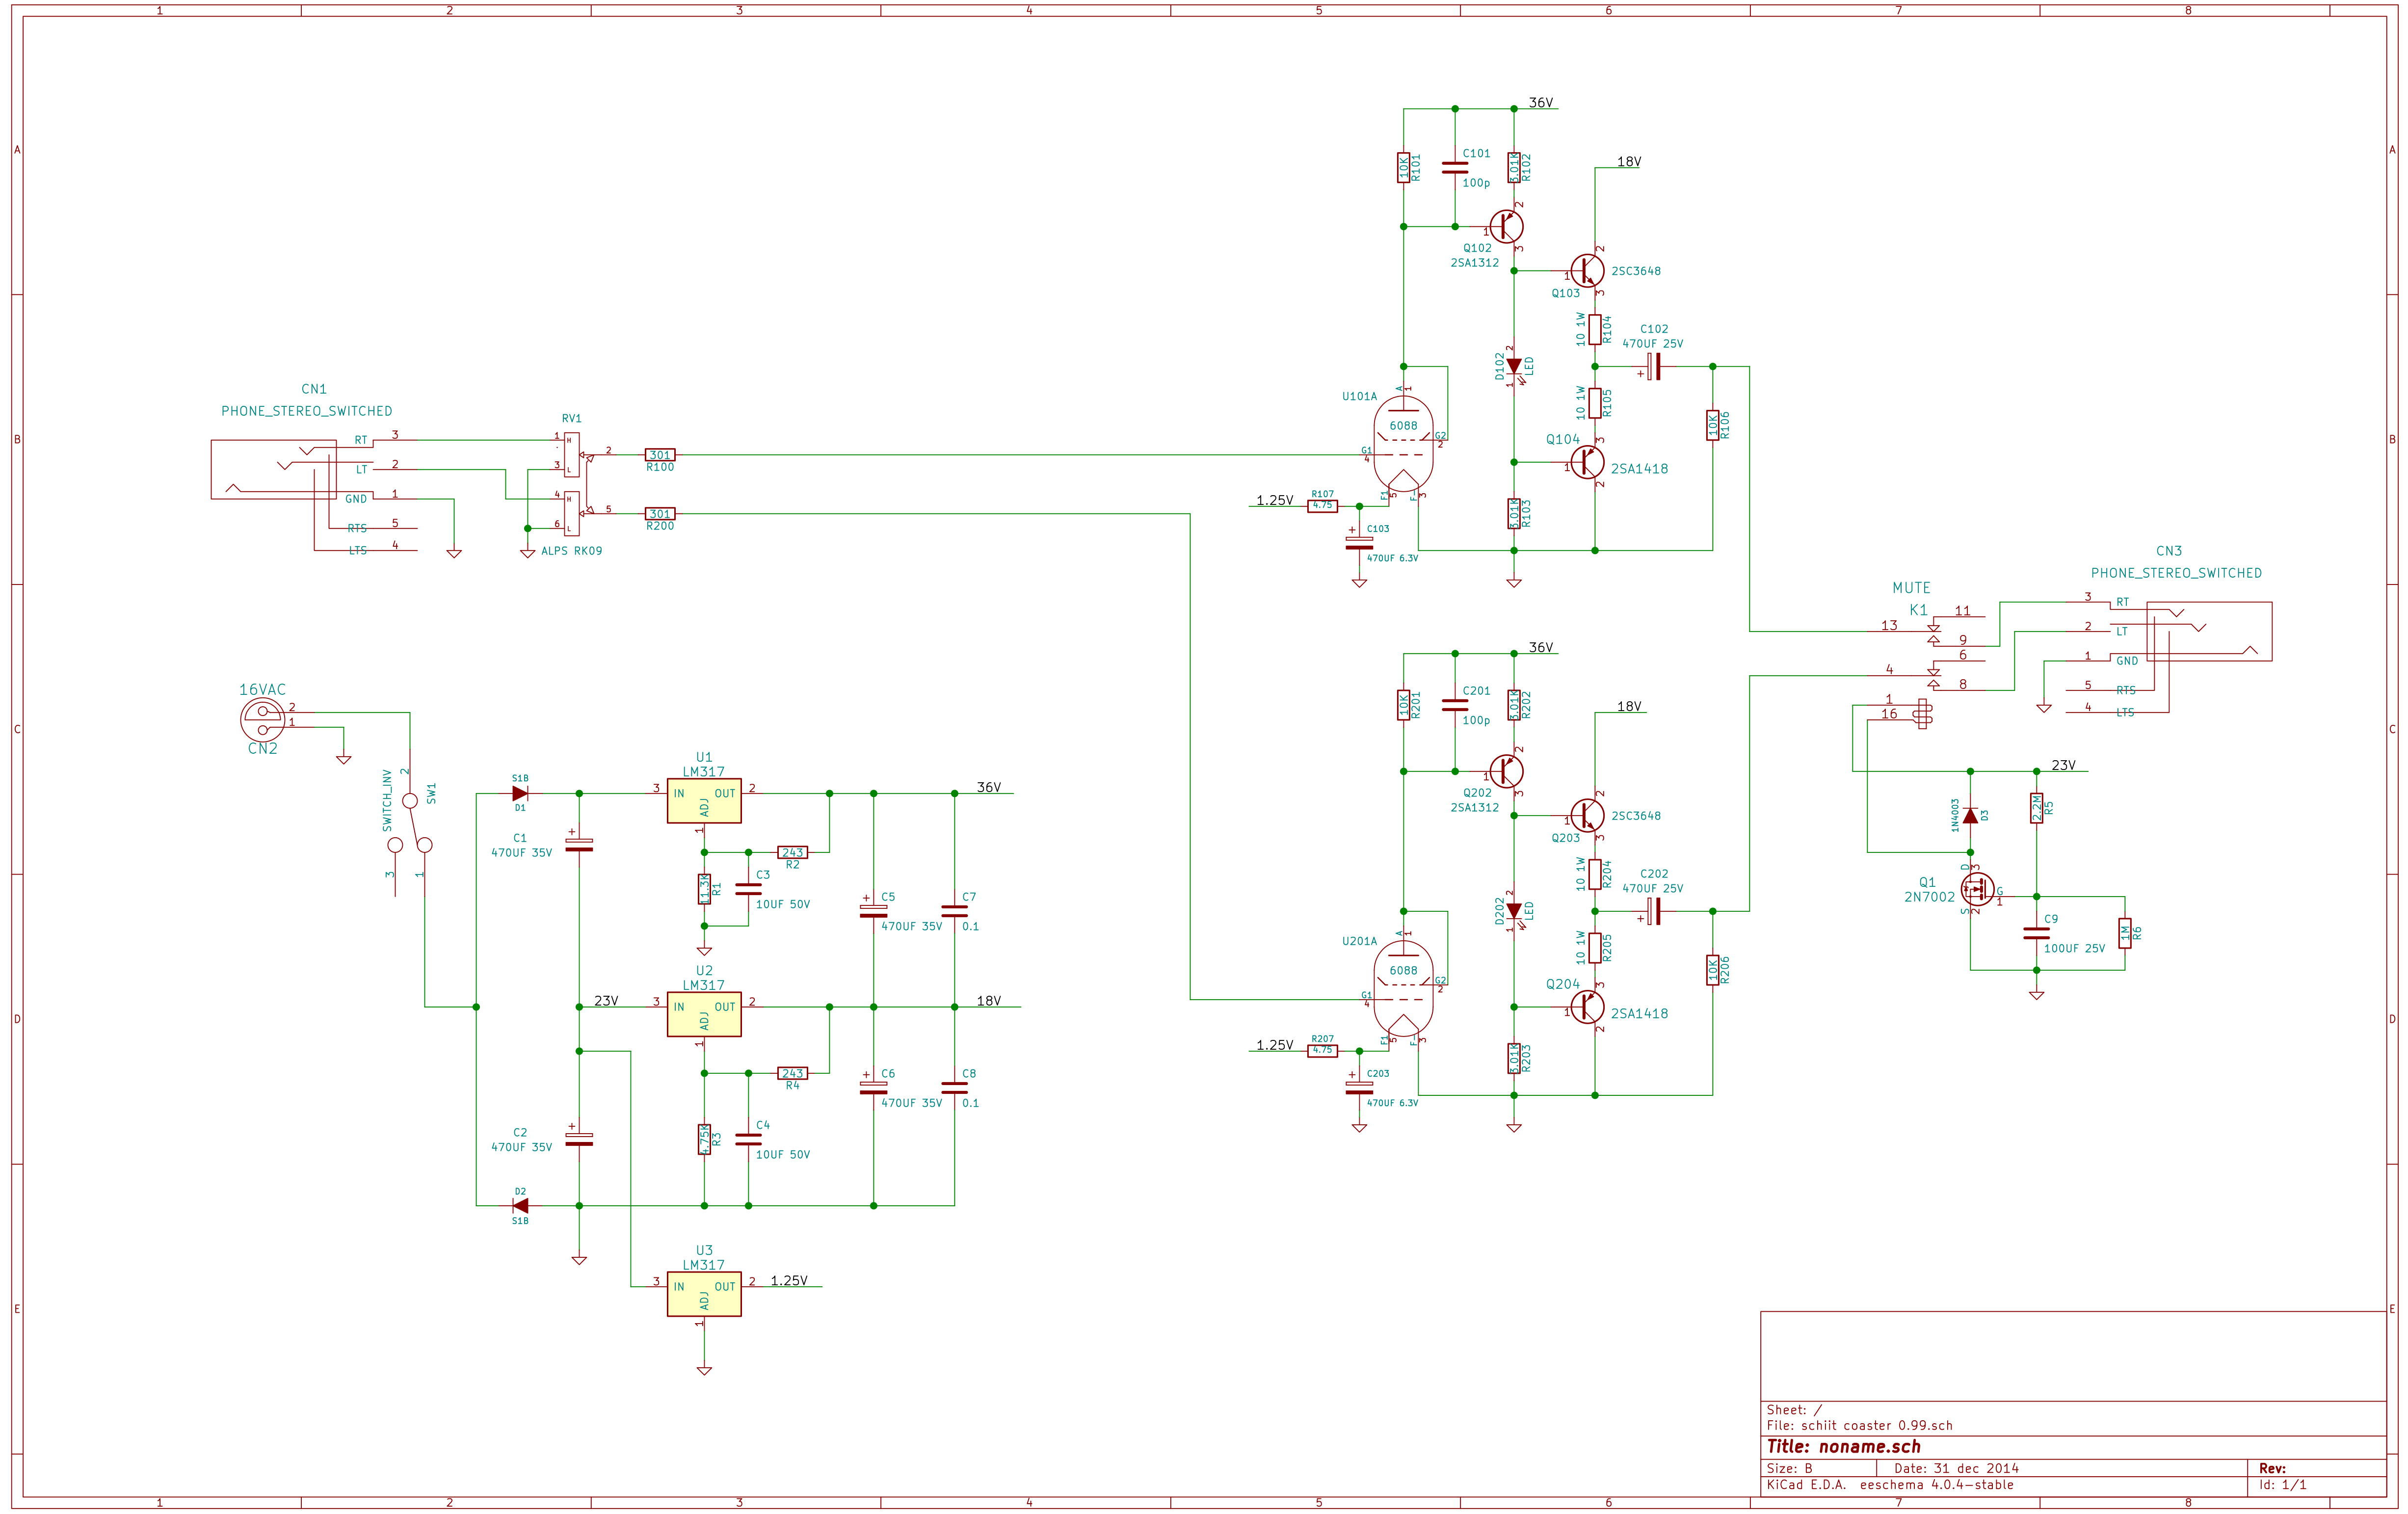 Unofficial Schiit Diy Coaster Amp Page 6 Headphone Reviews And Bwd Voltage Regulator Wiring Diagram 099 Complete